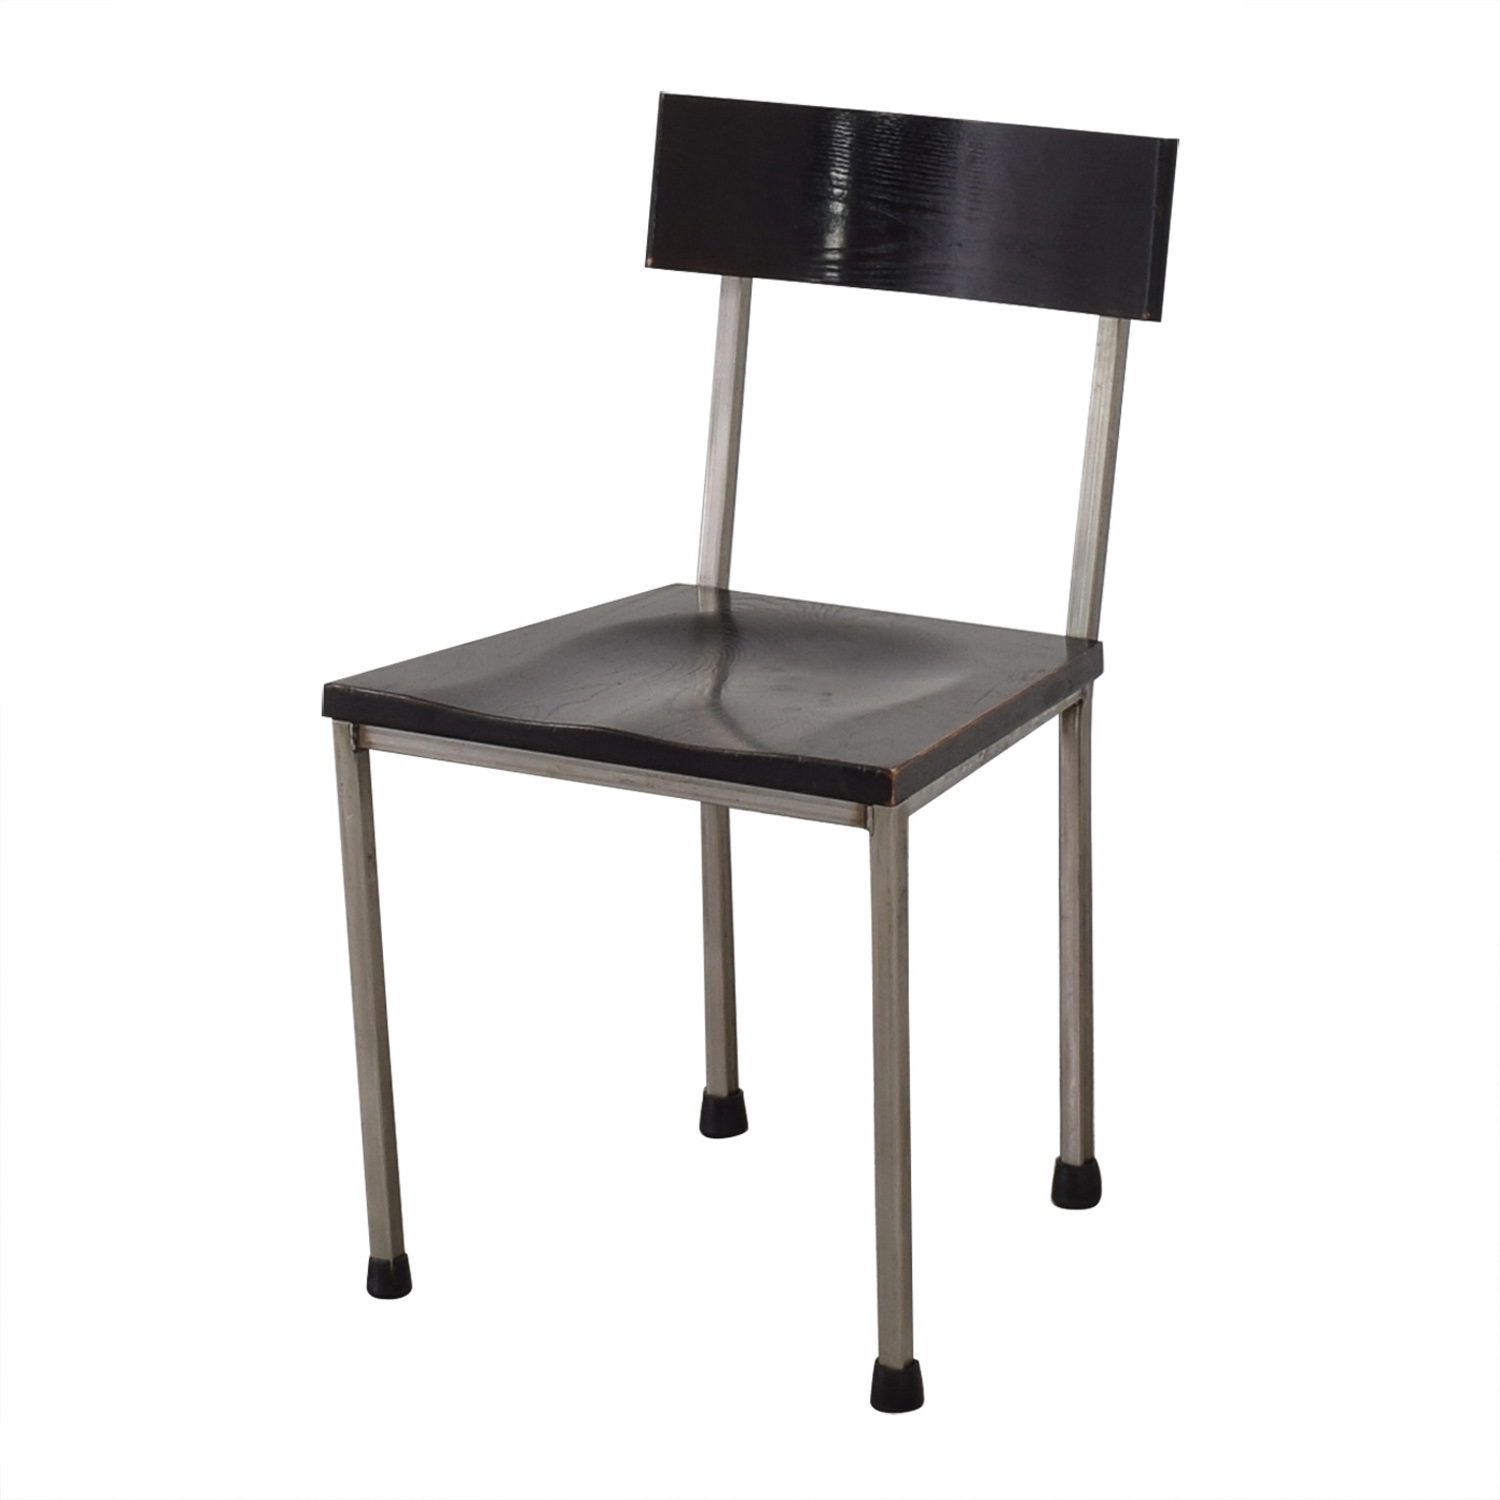 Parallel Lines Parallel Lines Dining Chairs for sale